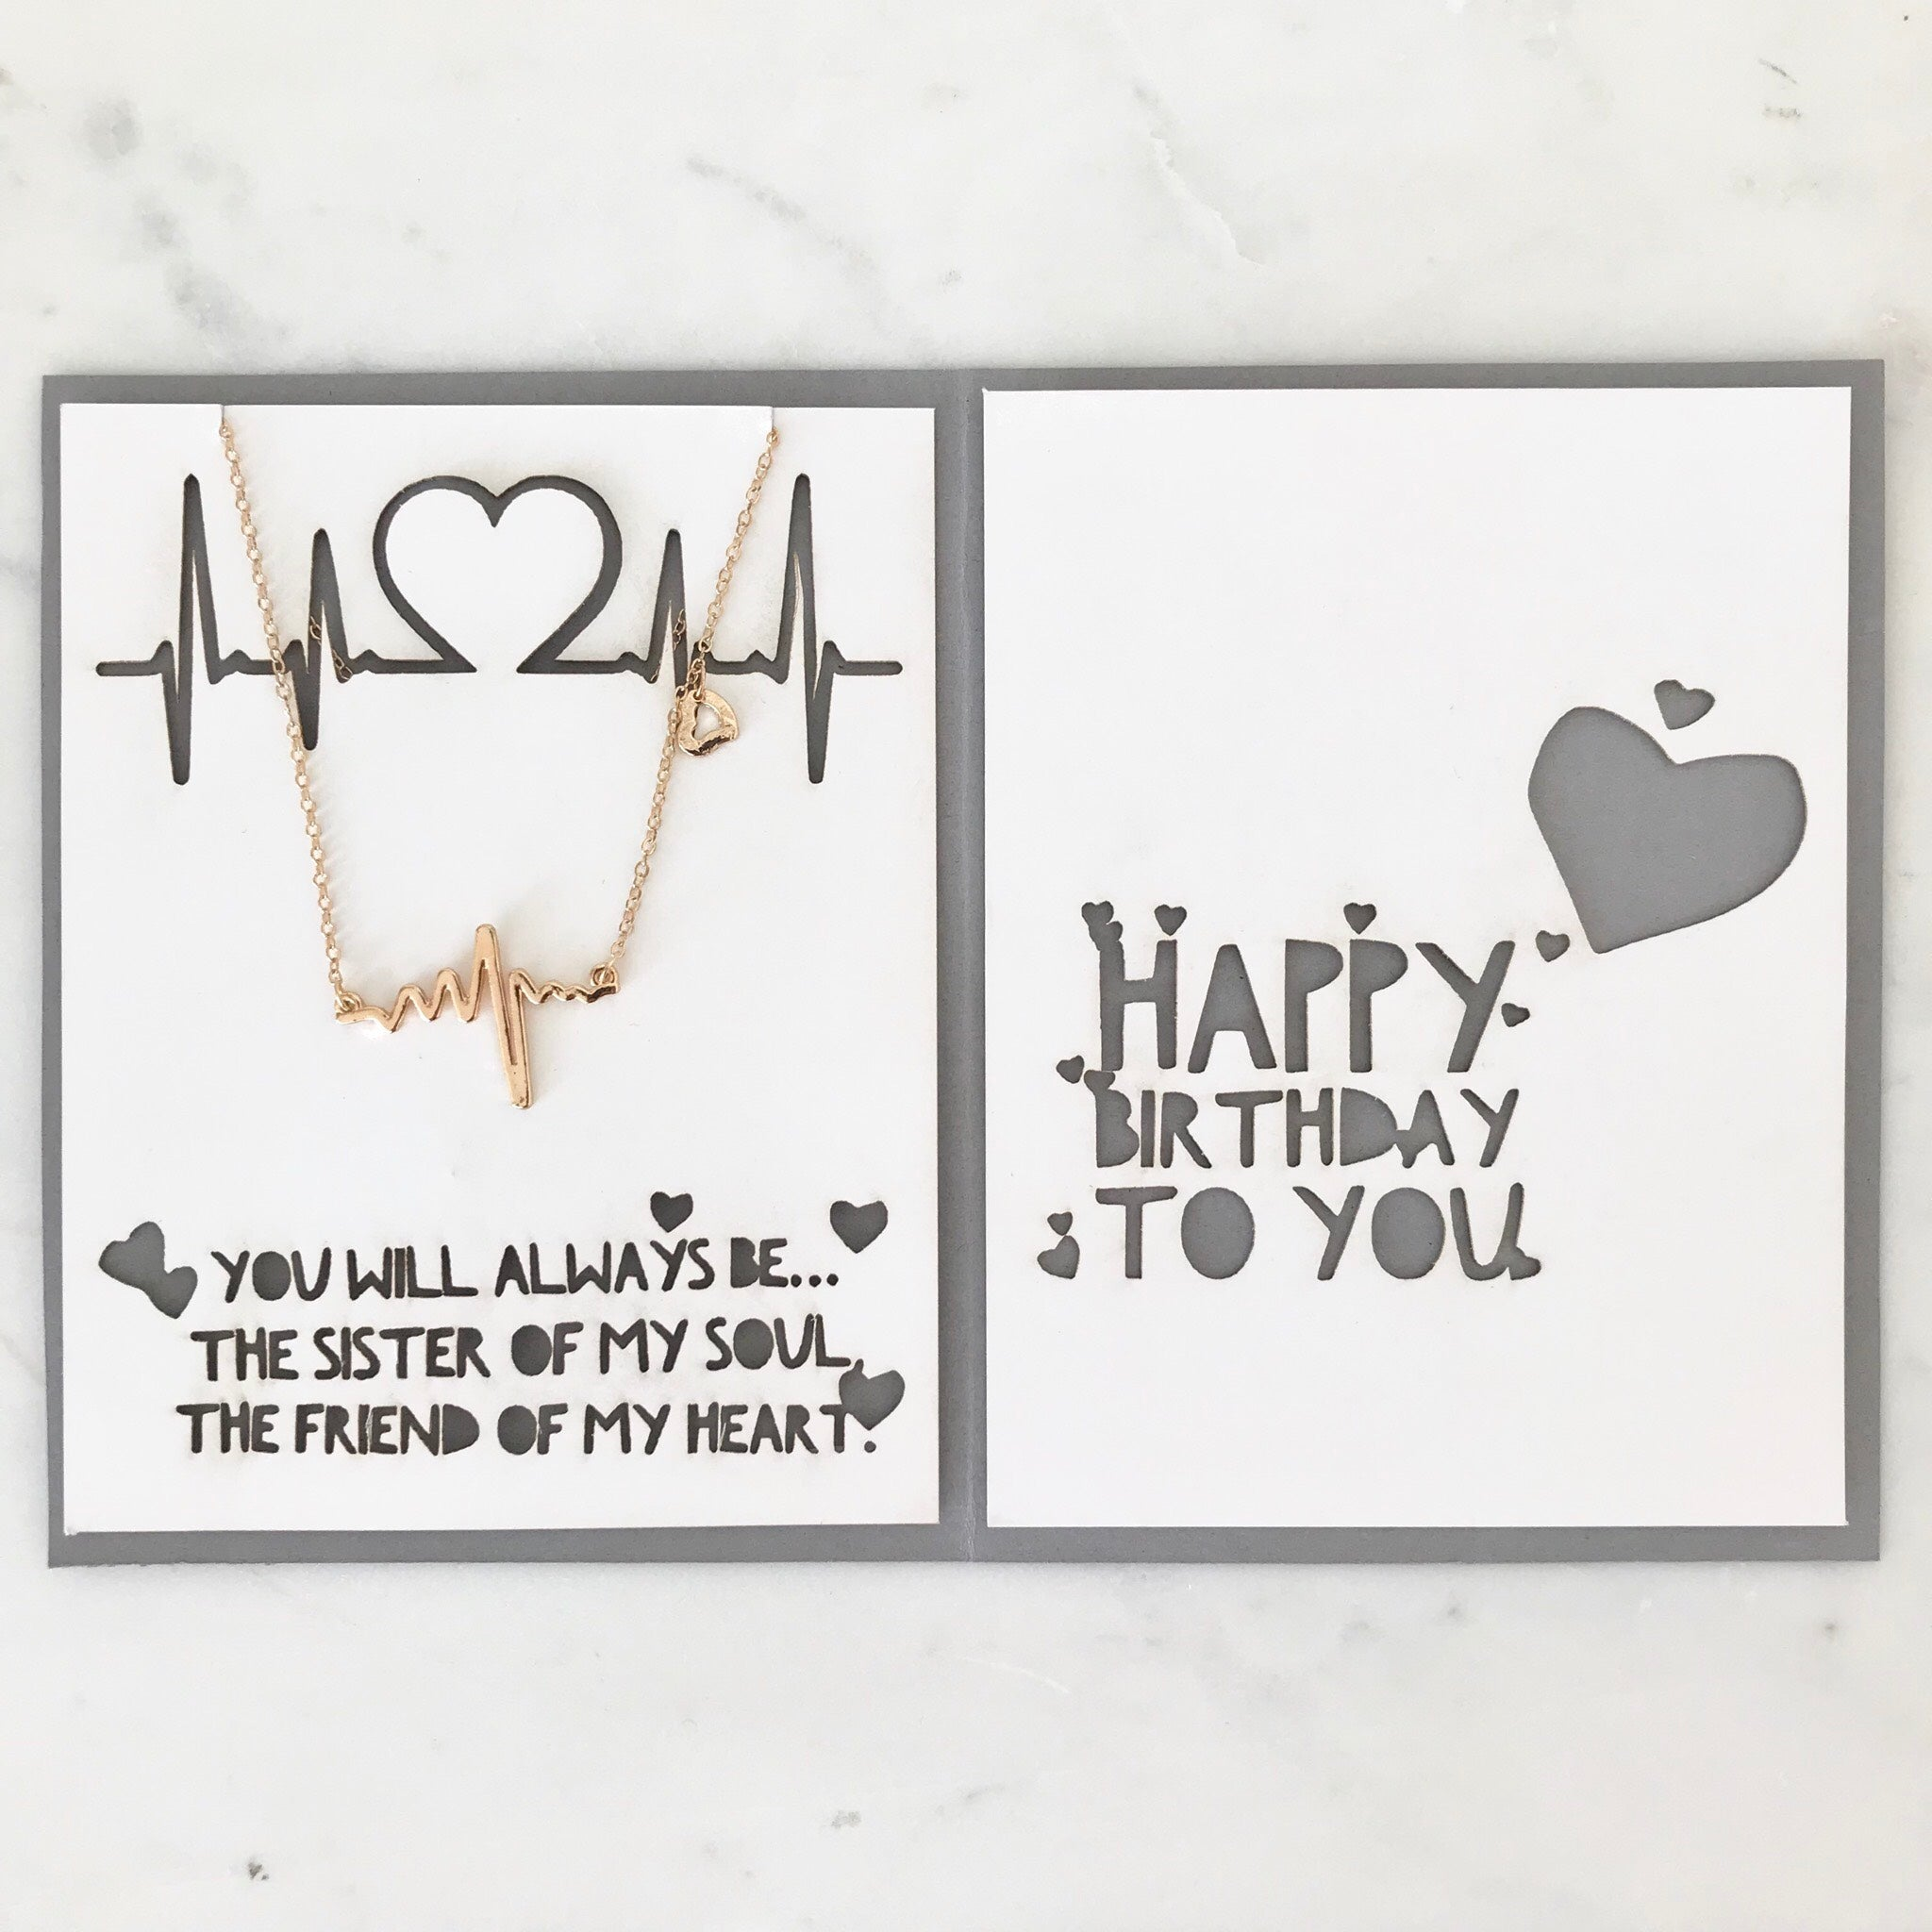 EKG Heartbeat Necklace In Gold Silver With Custom Birthday Card